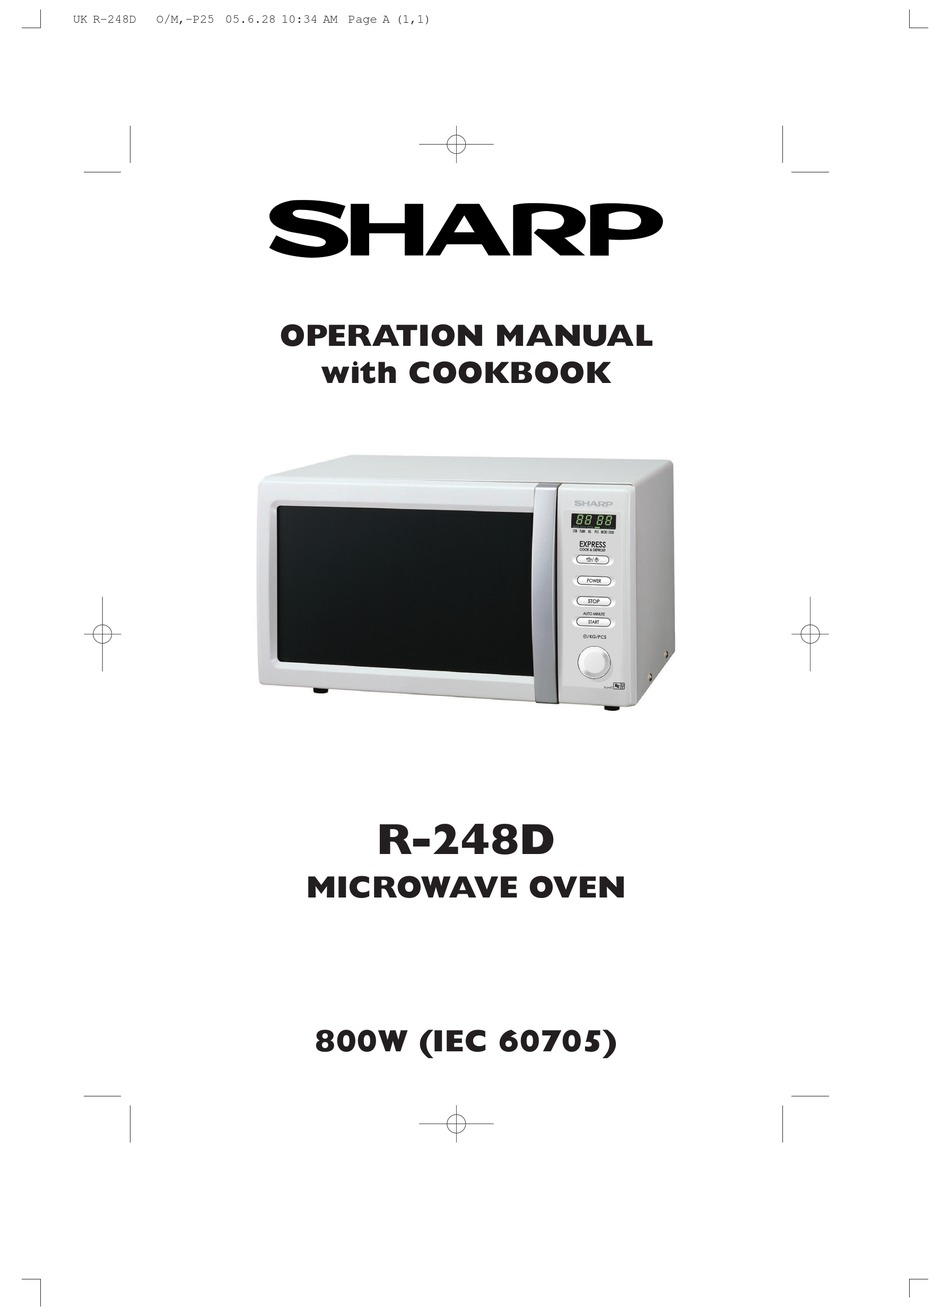 sharp r 248d operation manual with